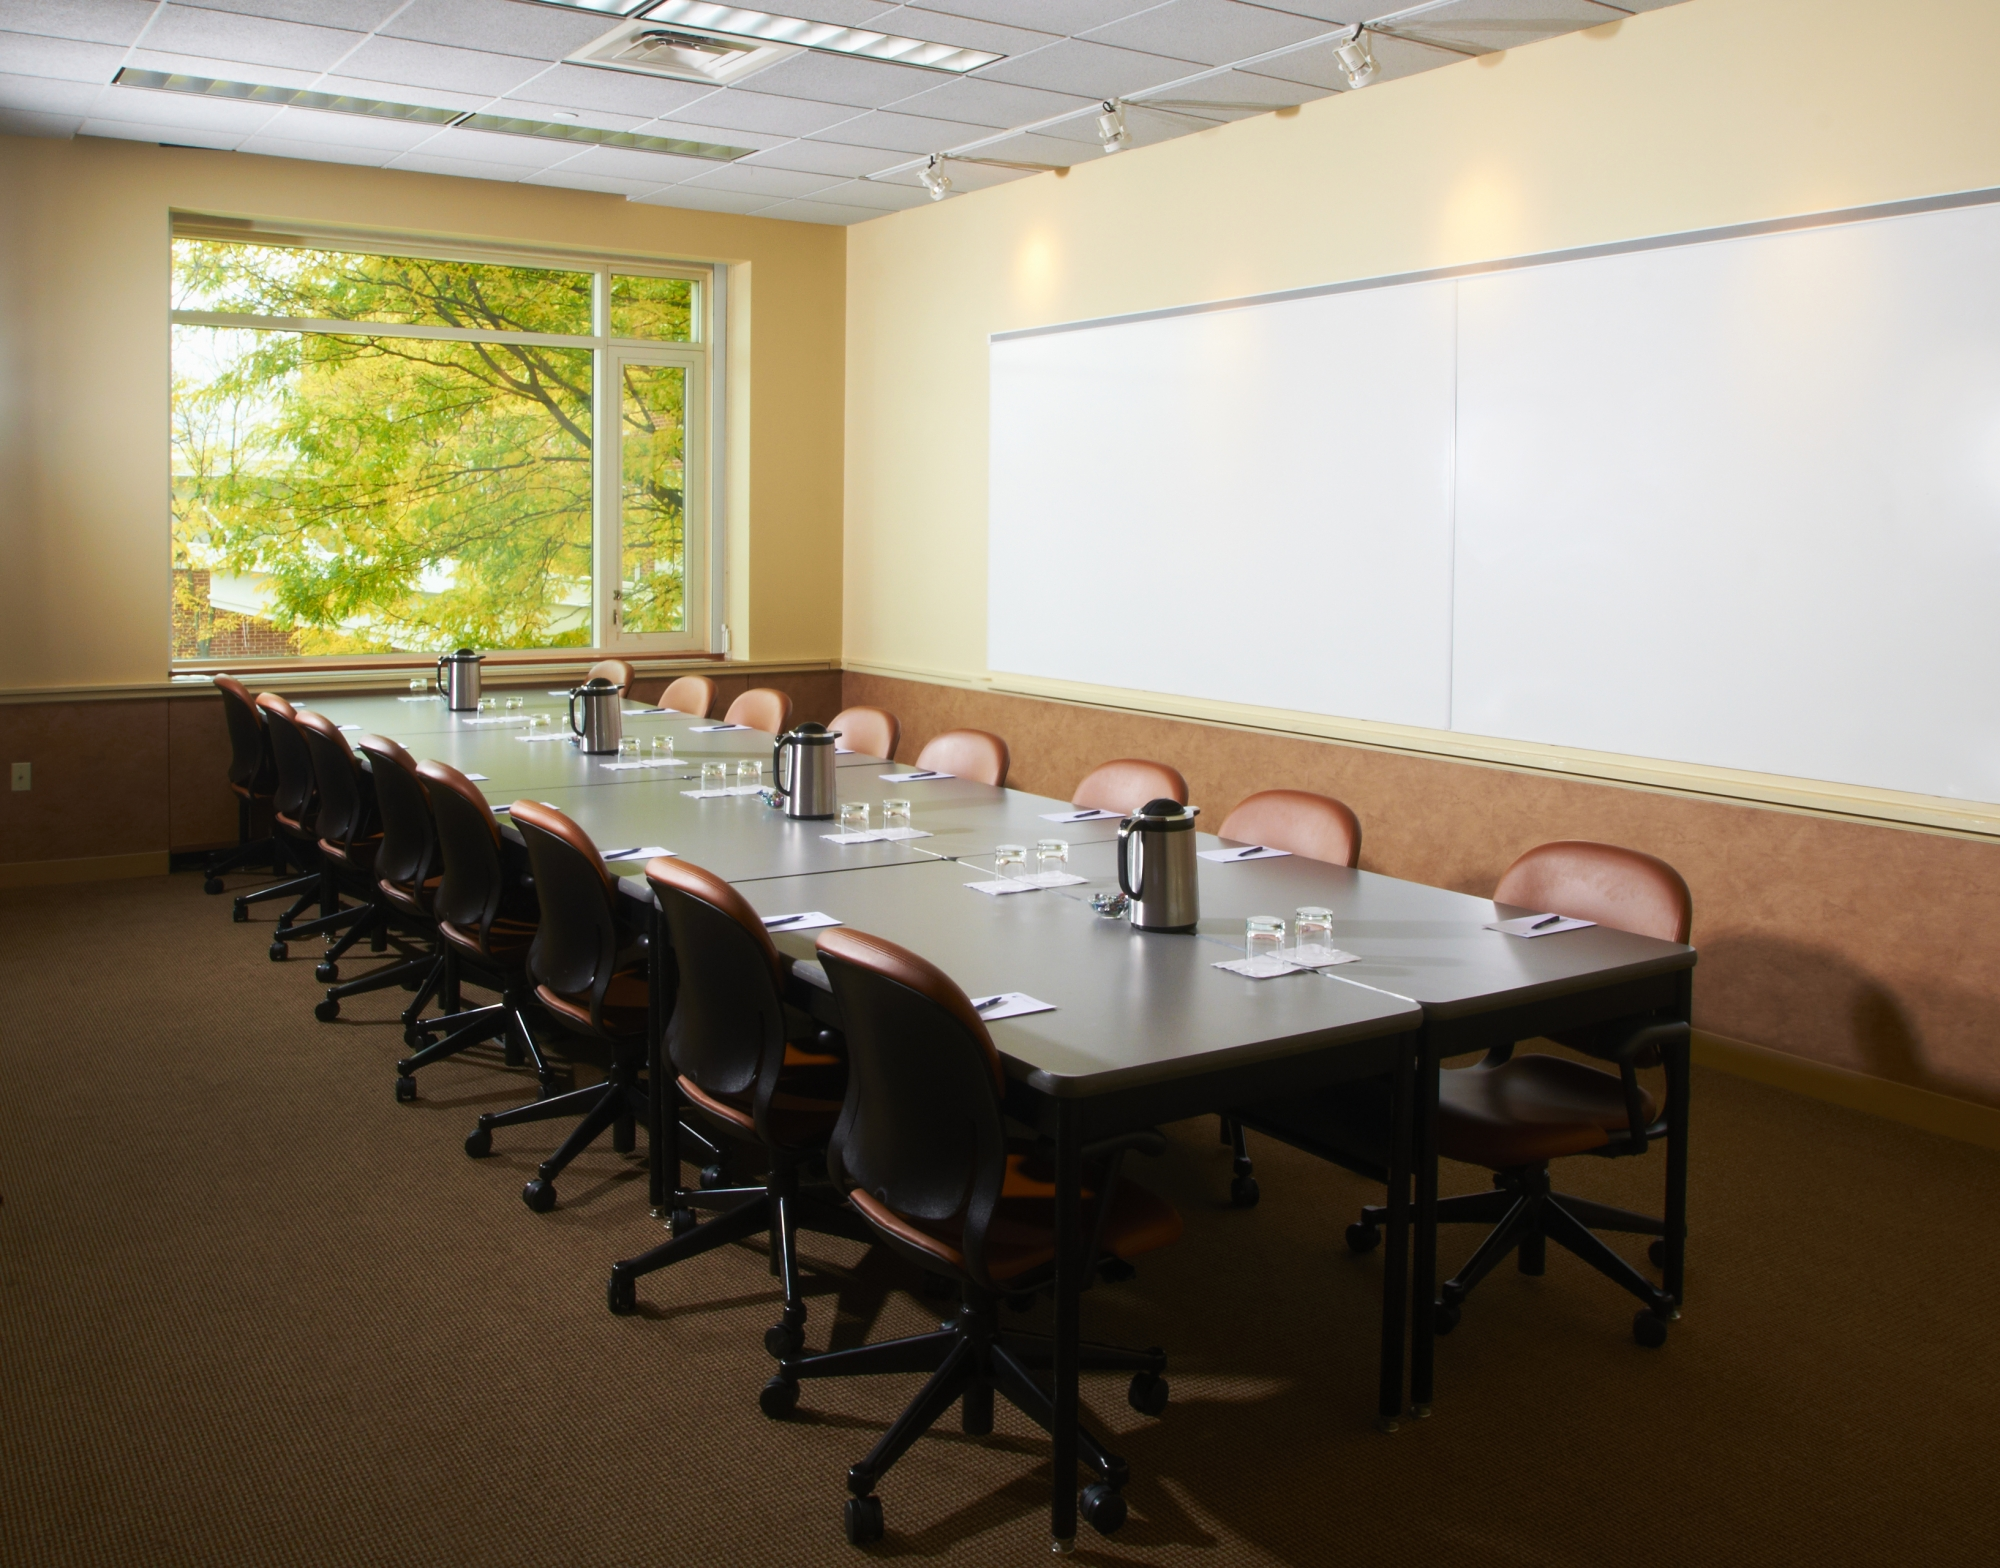 Conference Rooms The Penn Stater Hotel And Conference Center The Official Site State